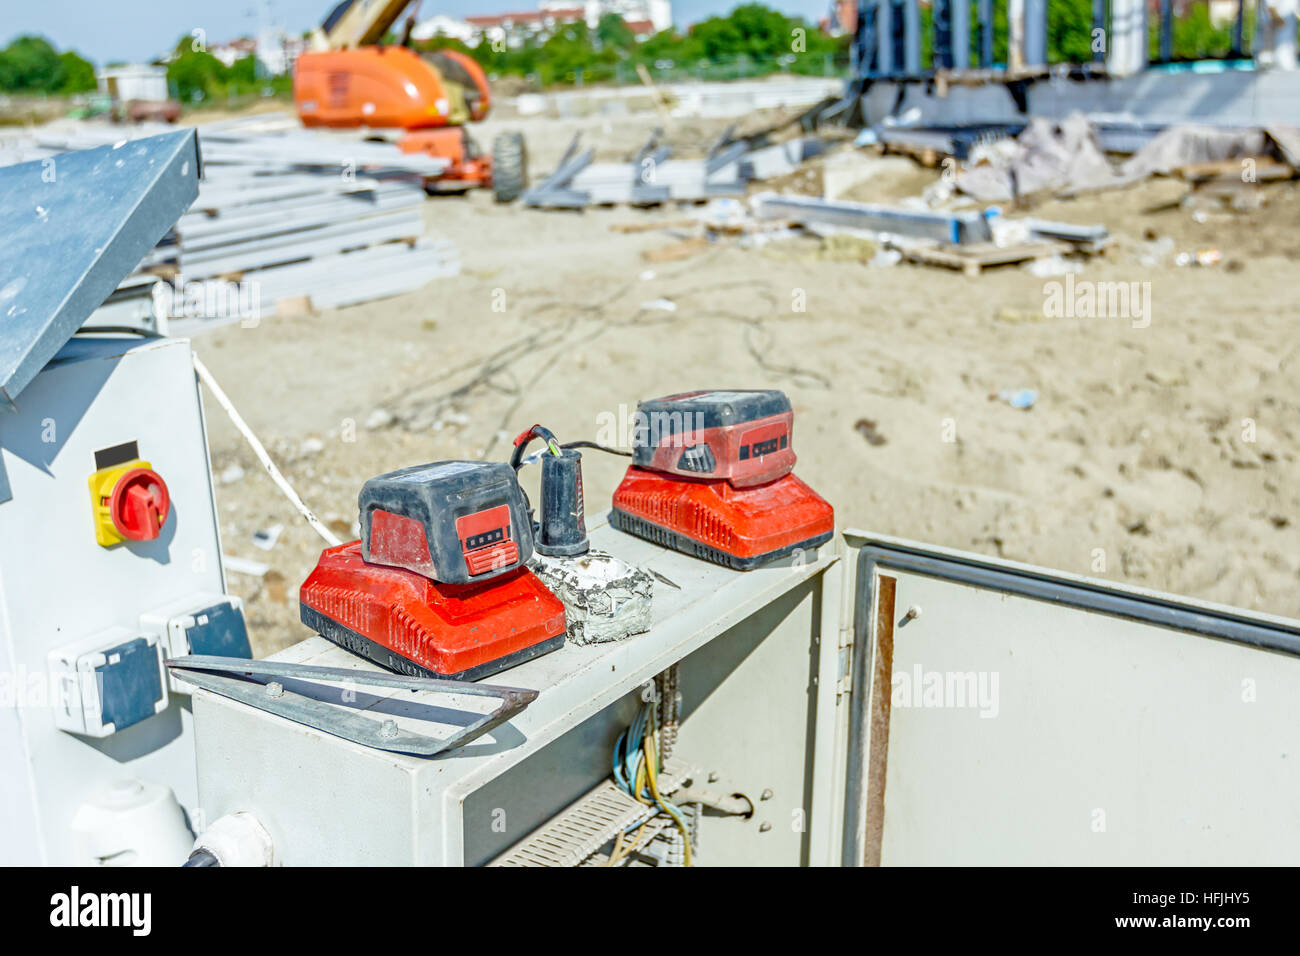 Charging rechargeable battery over power charger, for cordless tools. Fuse box on building site. - Stock Image